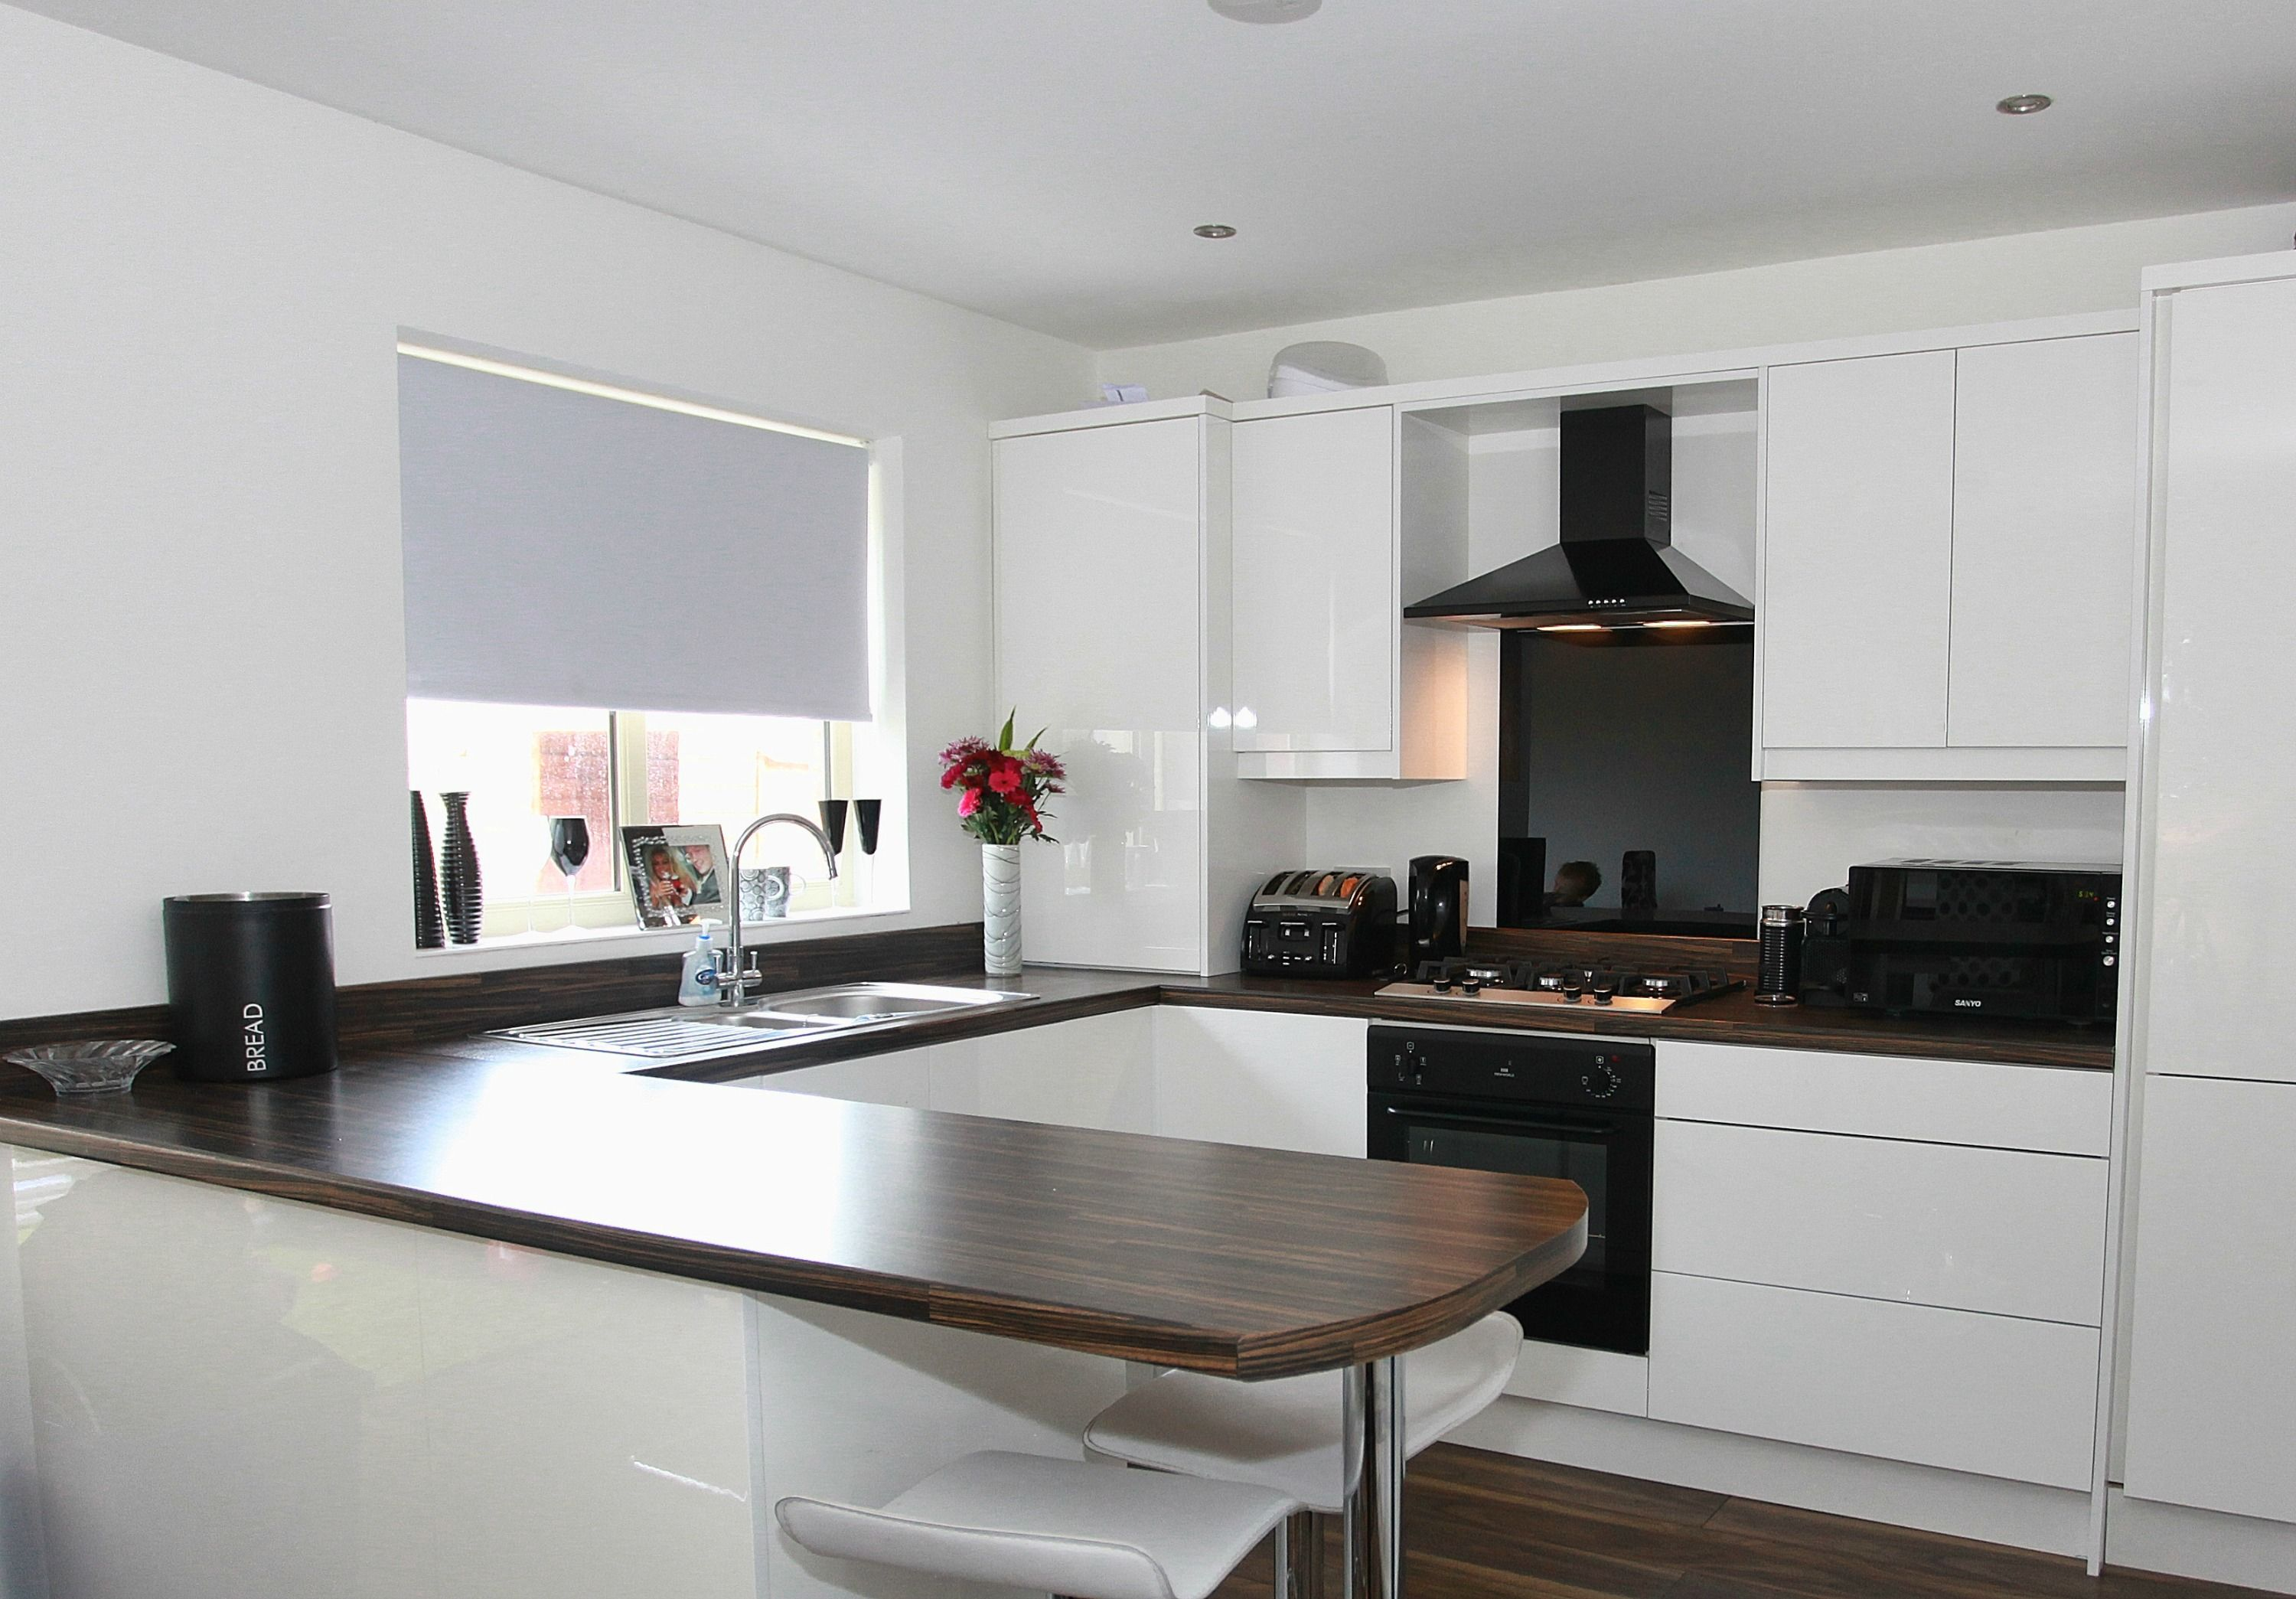 This Black Extractor Fan and Glass Splashback bring a